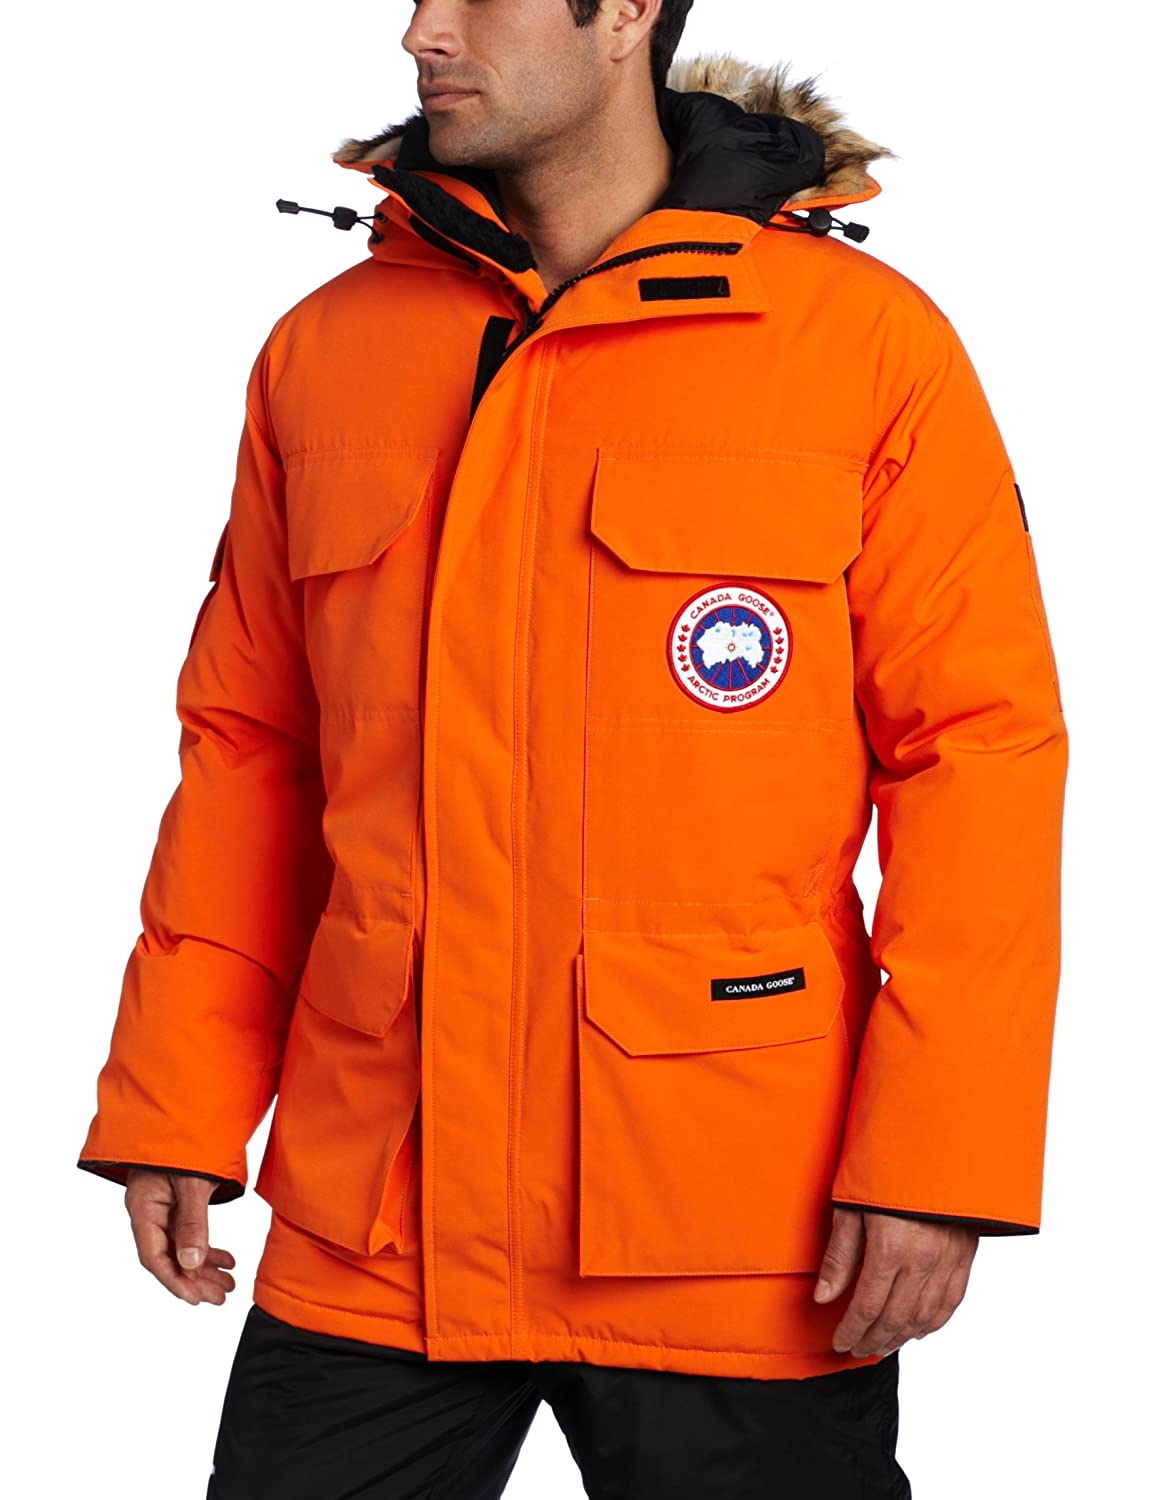 Canada Goose toronto sale official - New Style Arrival Canada Goose Outlet Store Toronto Free Shipping ...